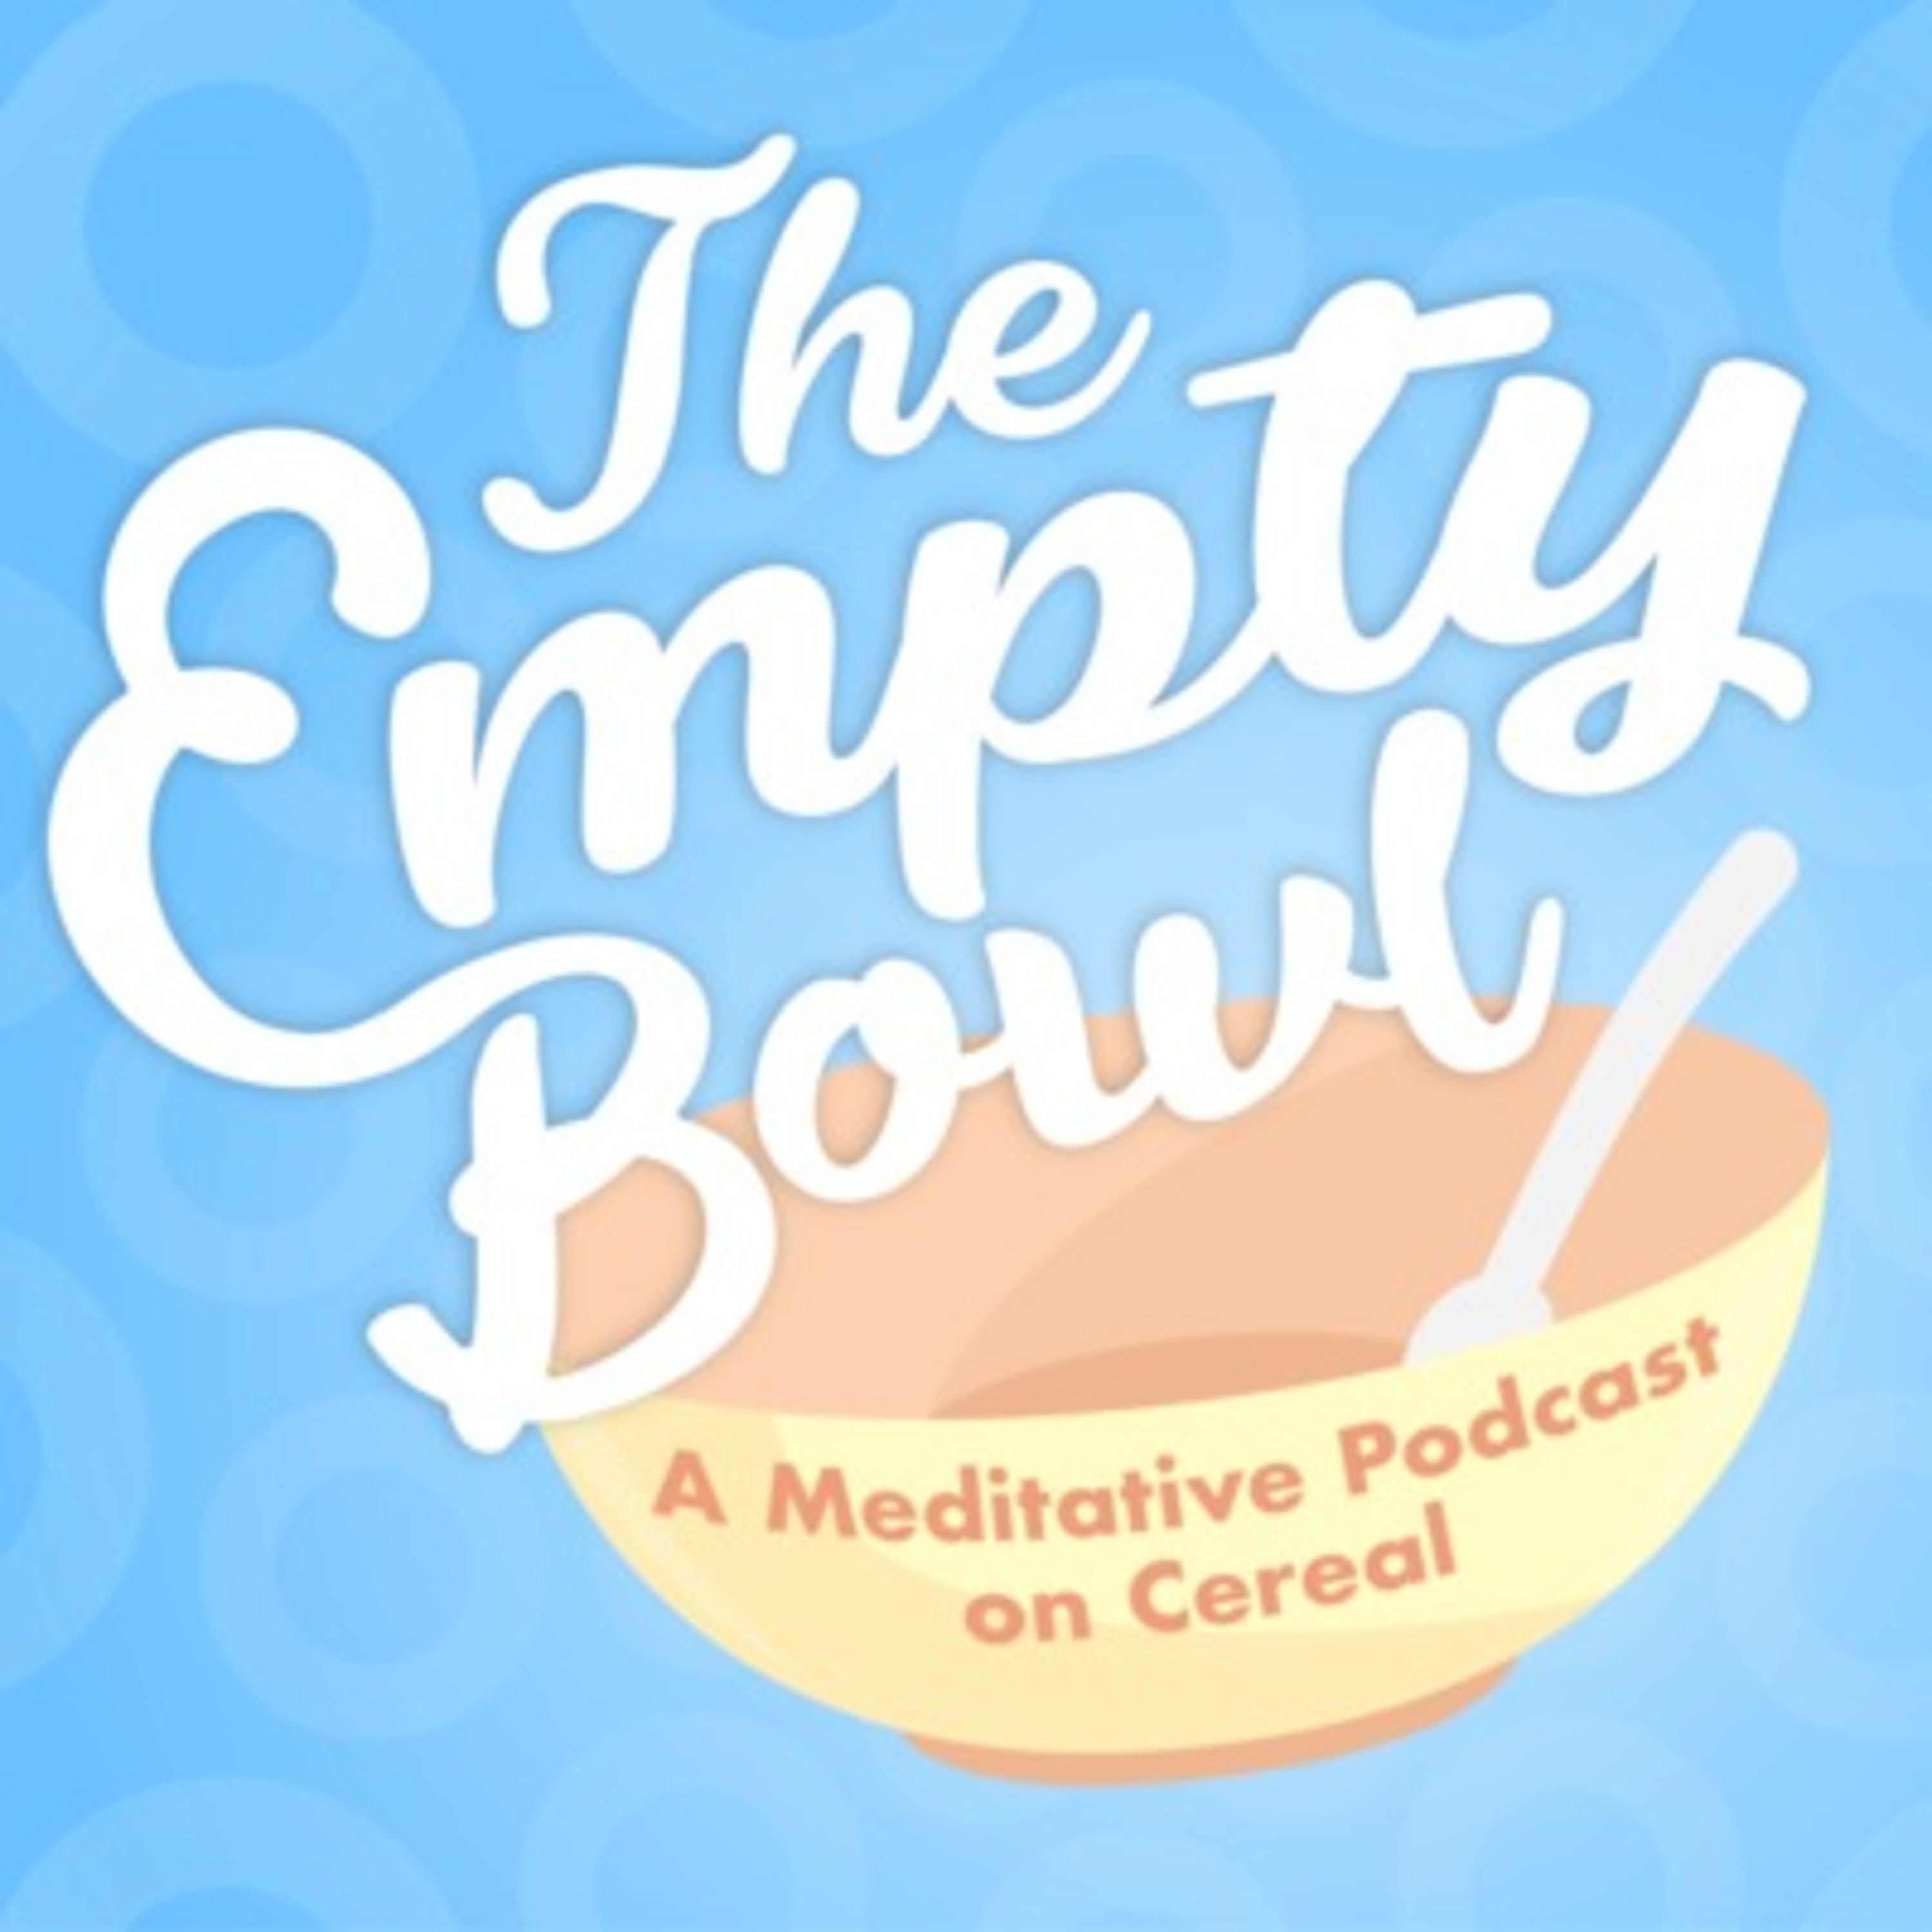 The Empty Bowl logo in white over an empty cereal bowl with 'A meditative Podcast on Cereal' written on it. The background is a blue gradient with light blue rings.